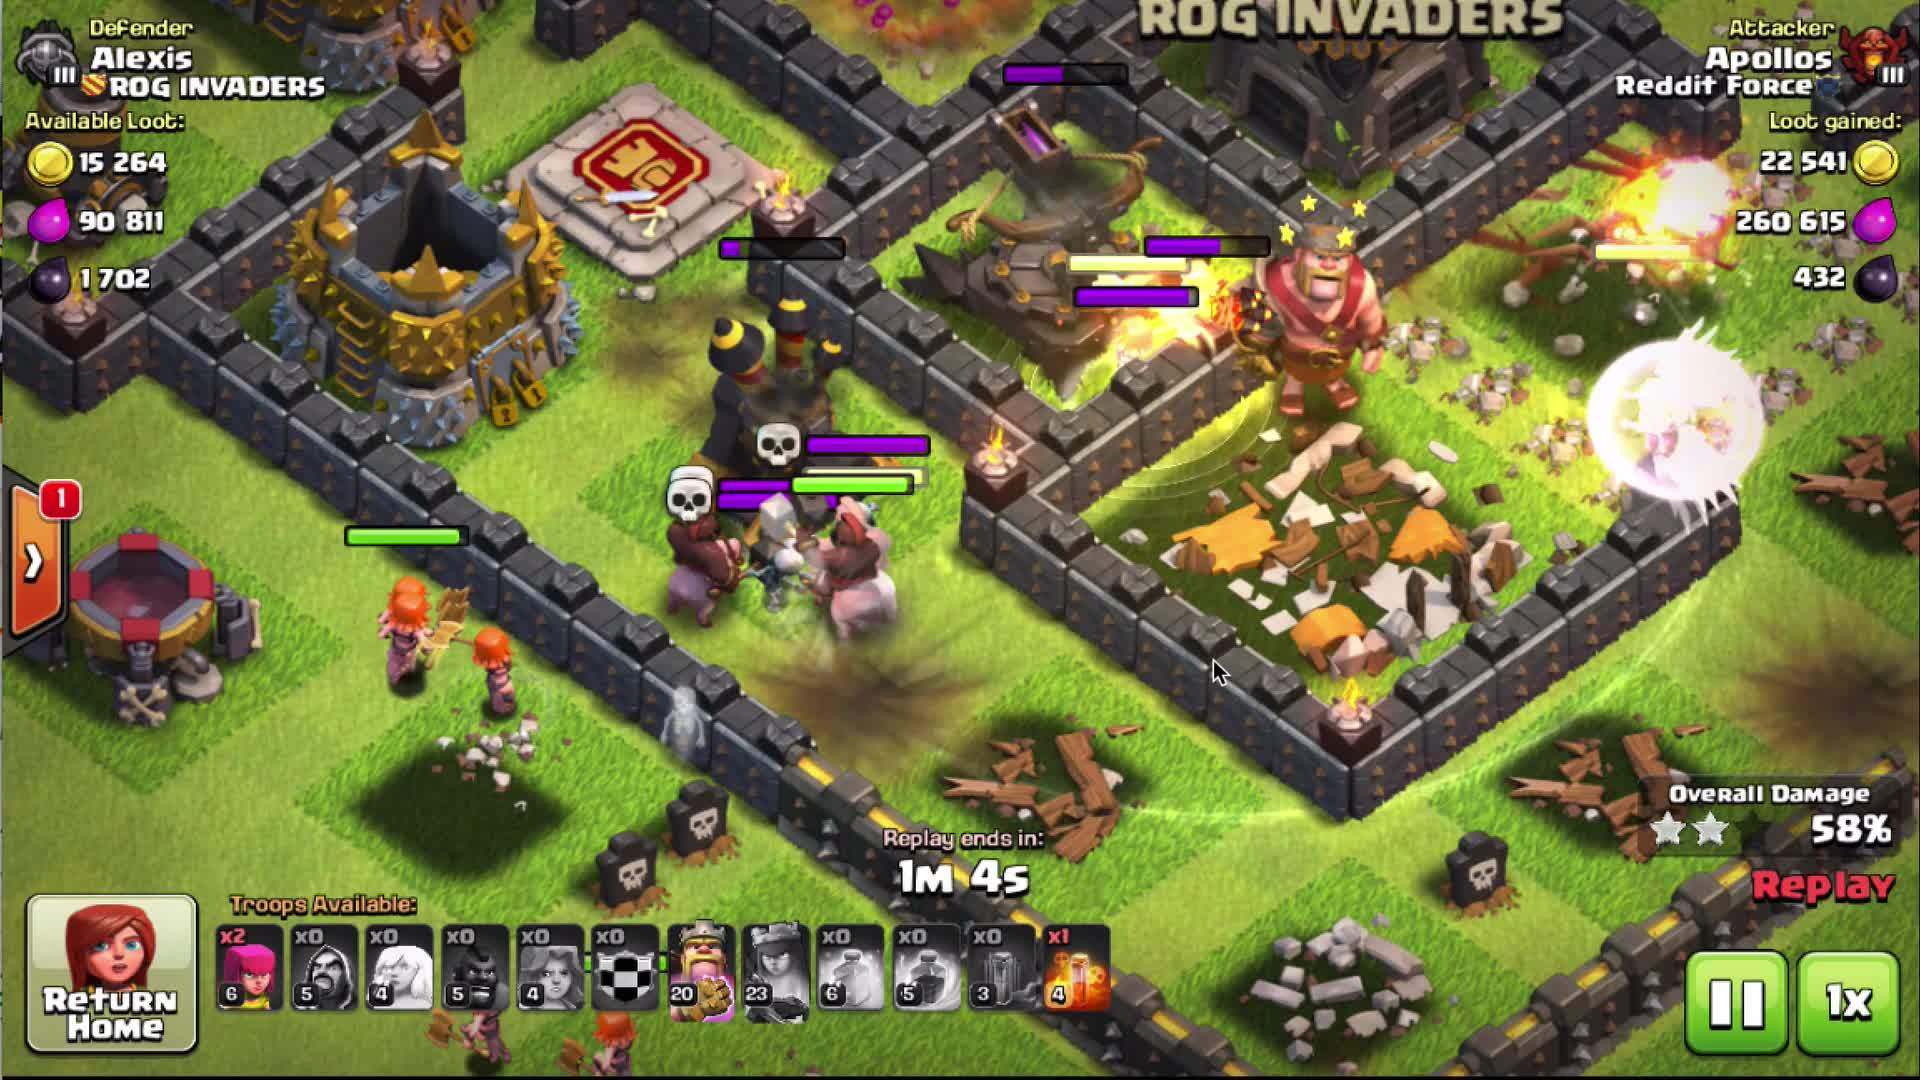 clashofclans, No one left behind GIFs